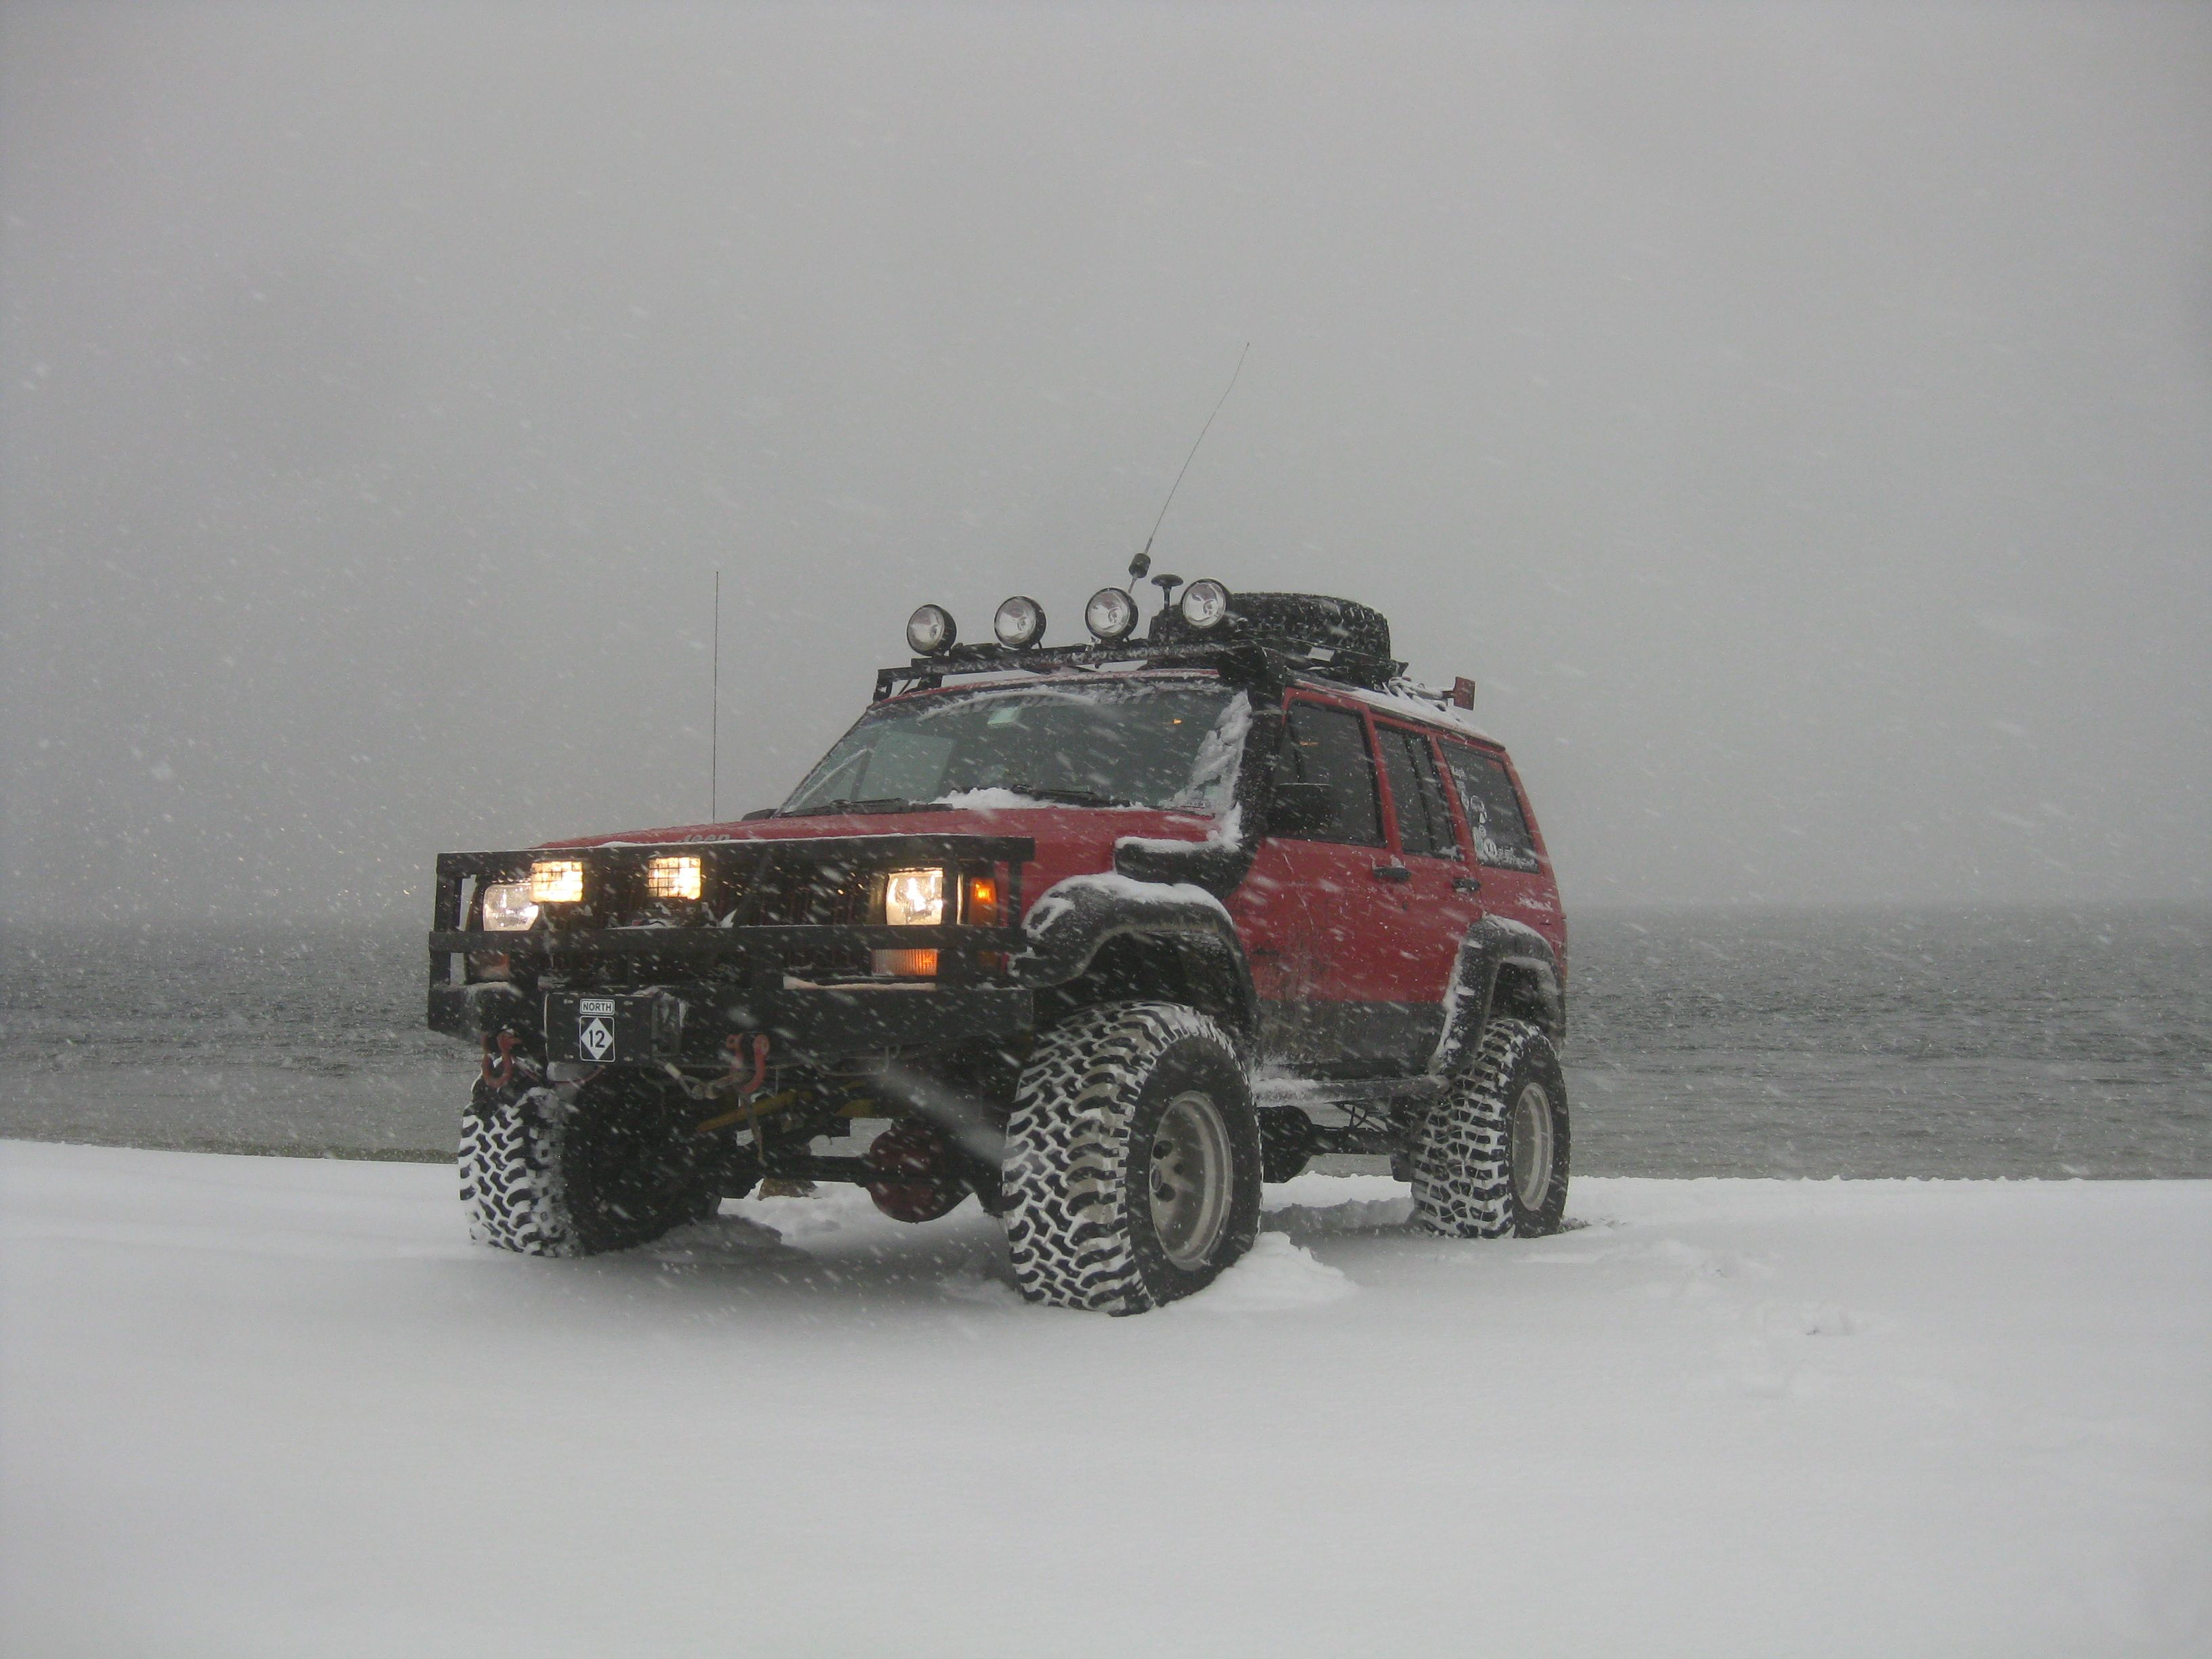 Jeep Cherokee Xj Xjae In The Snow At The New River Inlet North Carolina Ideal Retirement Vacation Jeep Cherokee Jeep Cherokee Xj Jeep Cars